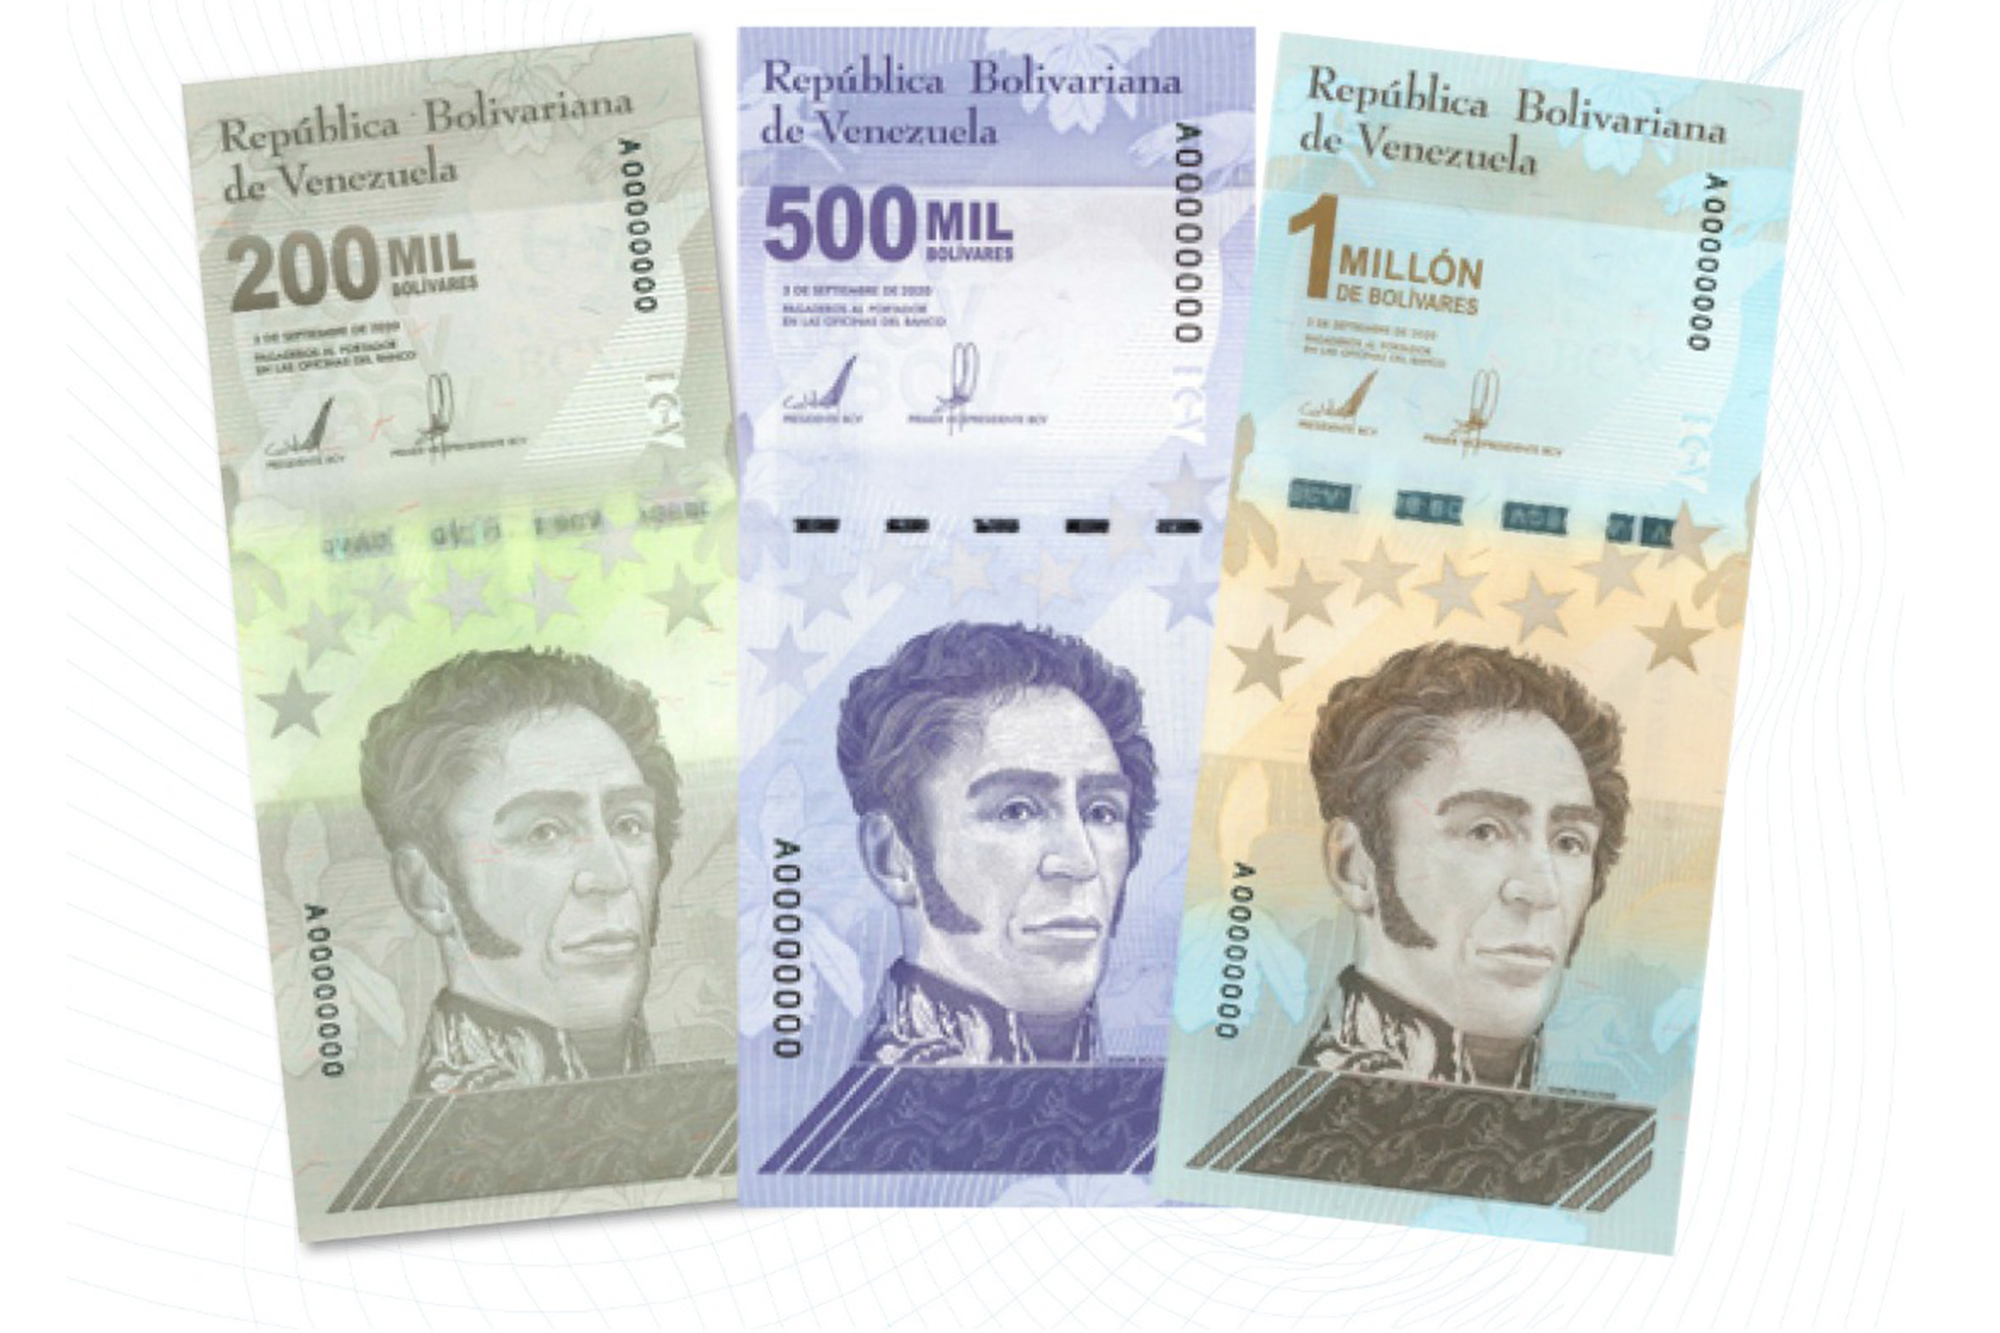 You can now be a 'millionaire' in Venezuela for 50 cents